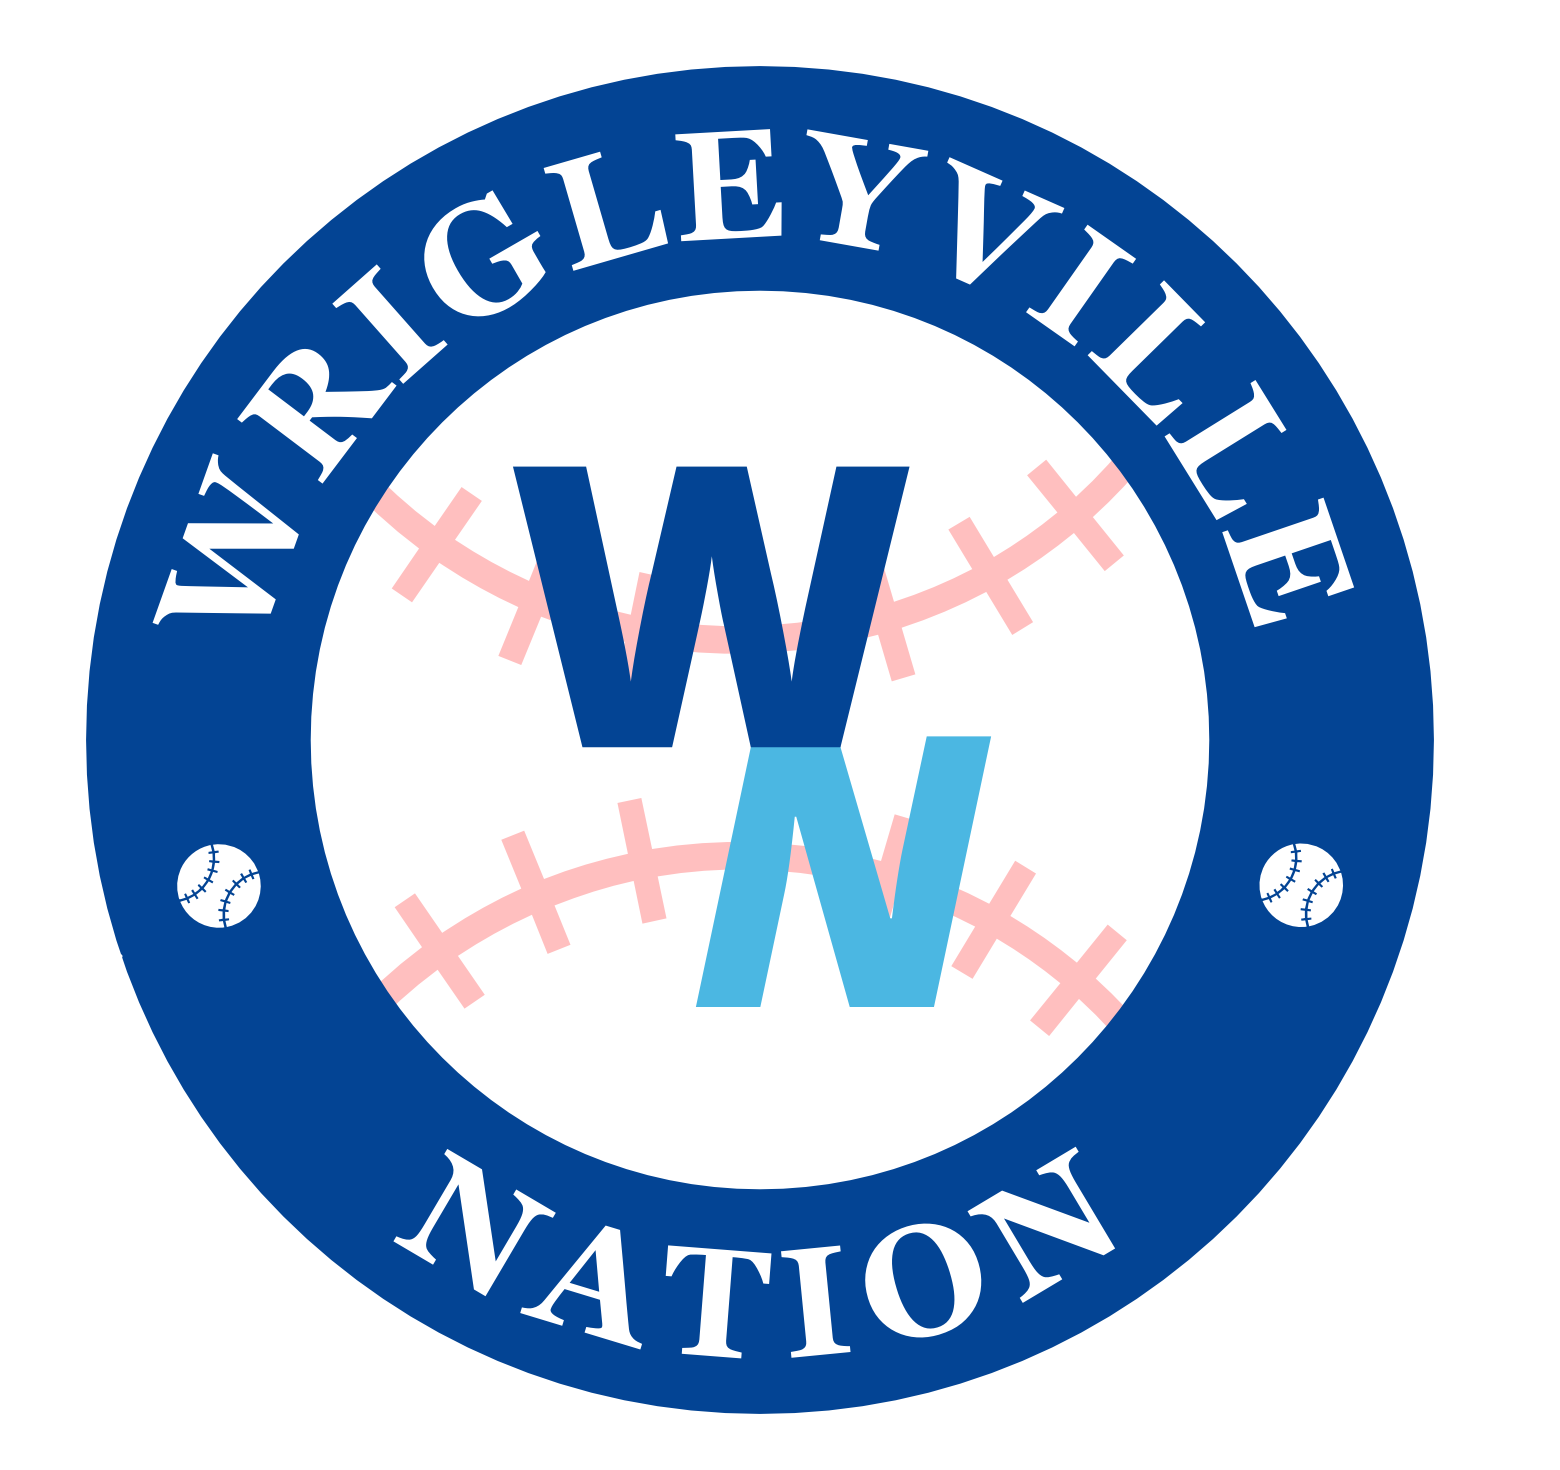 Wrigleyville Nation Ep 261 - Guest: Jared Wyllys, Cubs Sox Series, Looking Ahead, & More show art